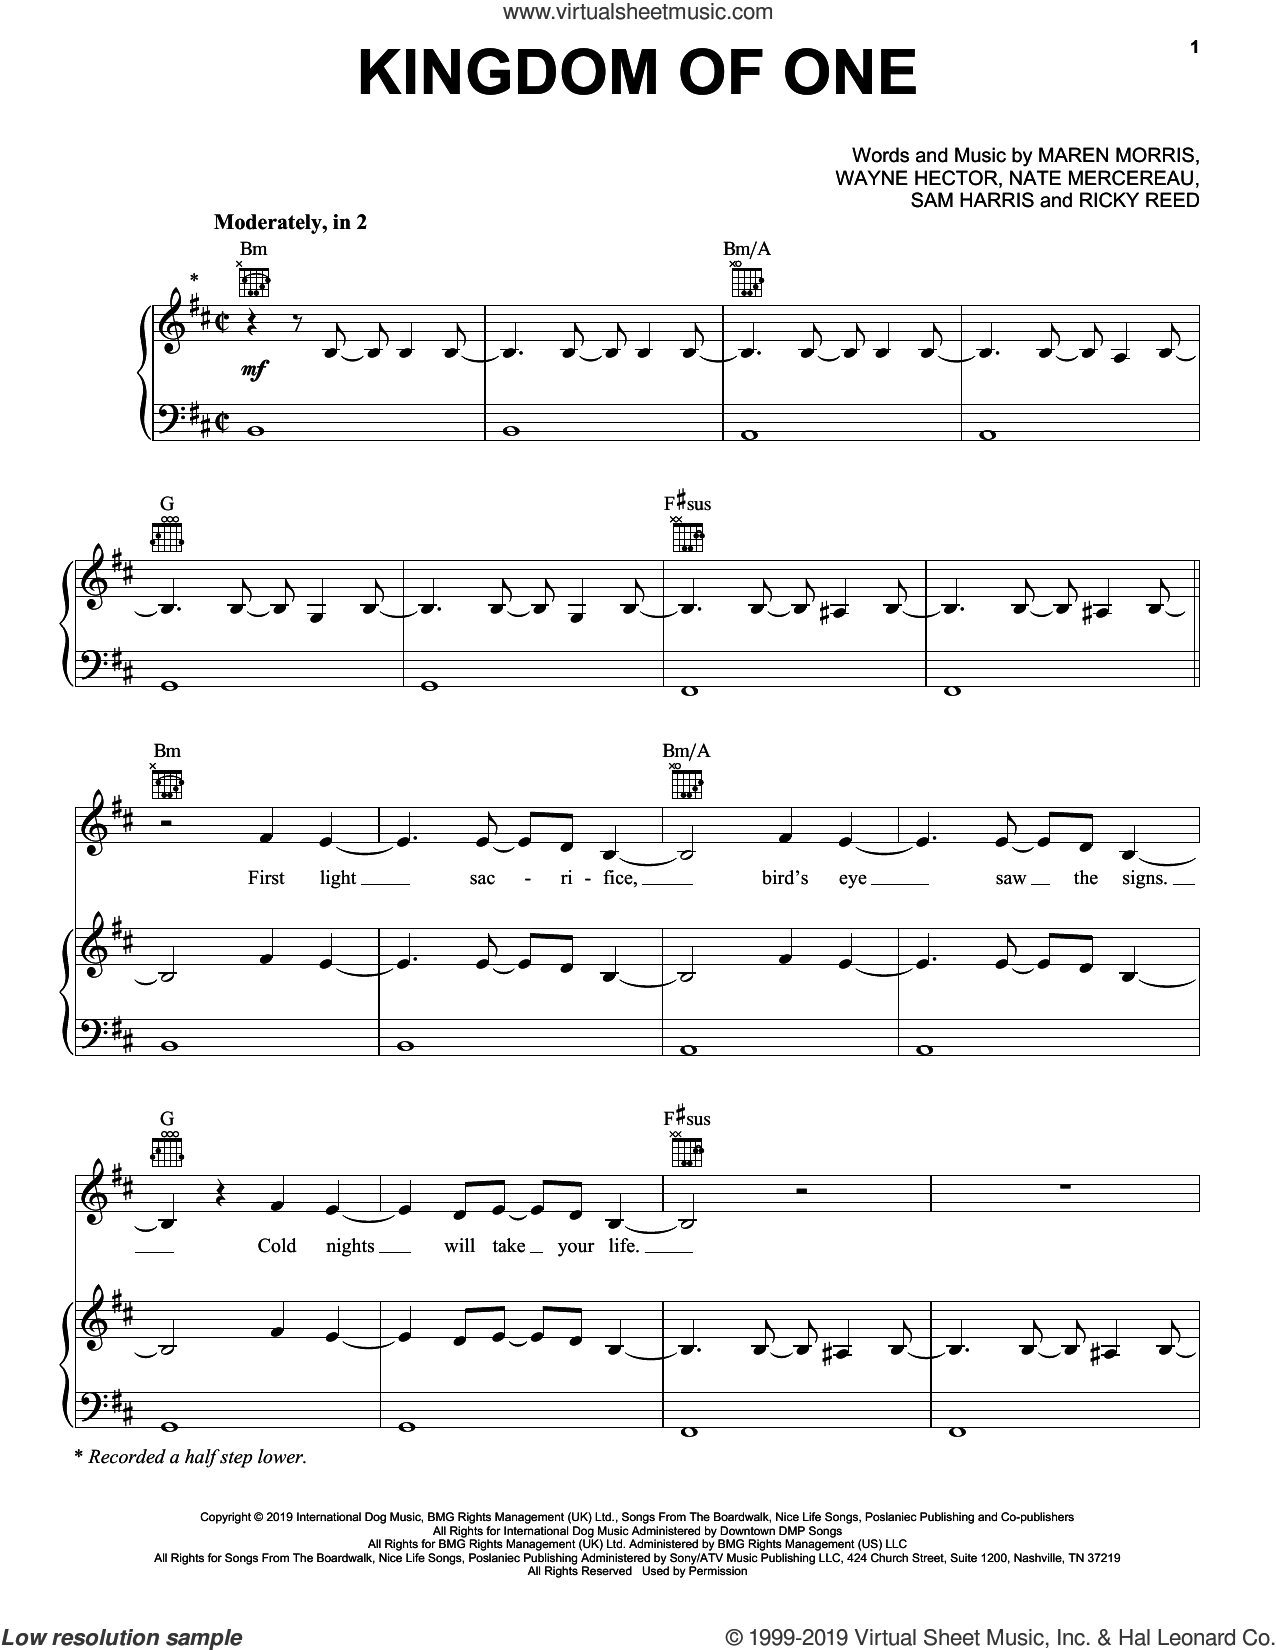 Kingdom Of One (from For the Throne: Music Inspired by Game of Thrones) sheet music for voice, piano or guitar by Maren Morris, Nate Mercereau, Ricky Reed, Sam Harris and Wayne Hector, intermediate skill level